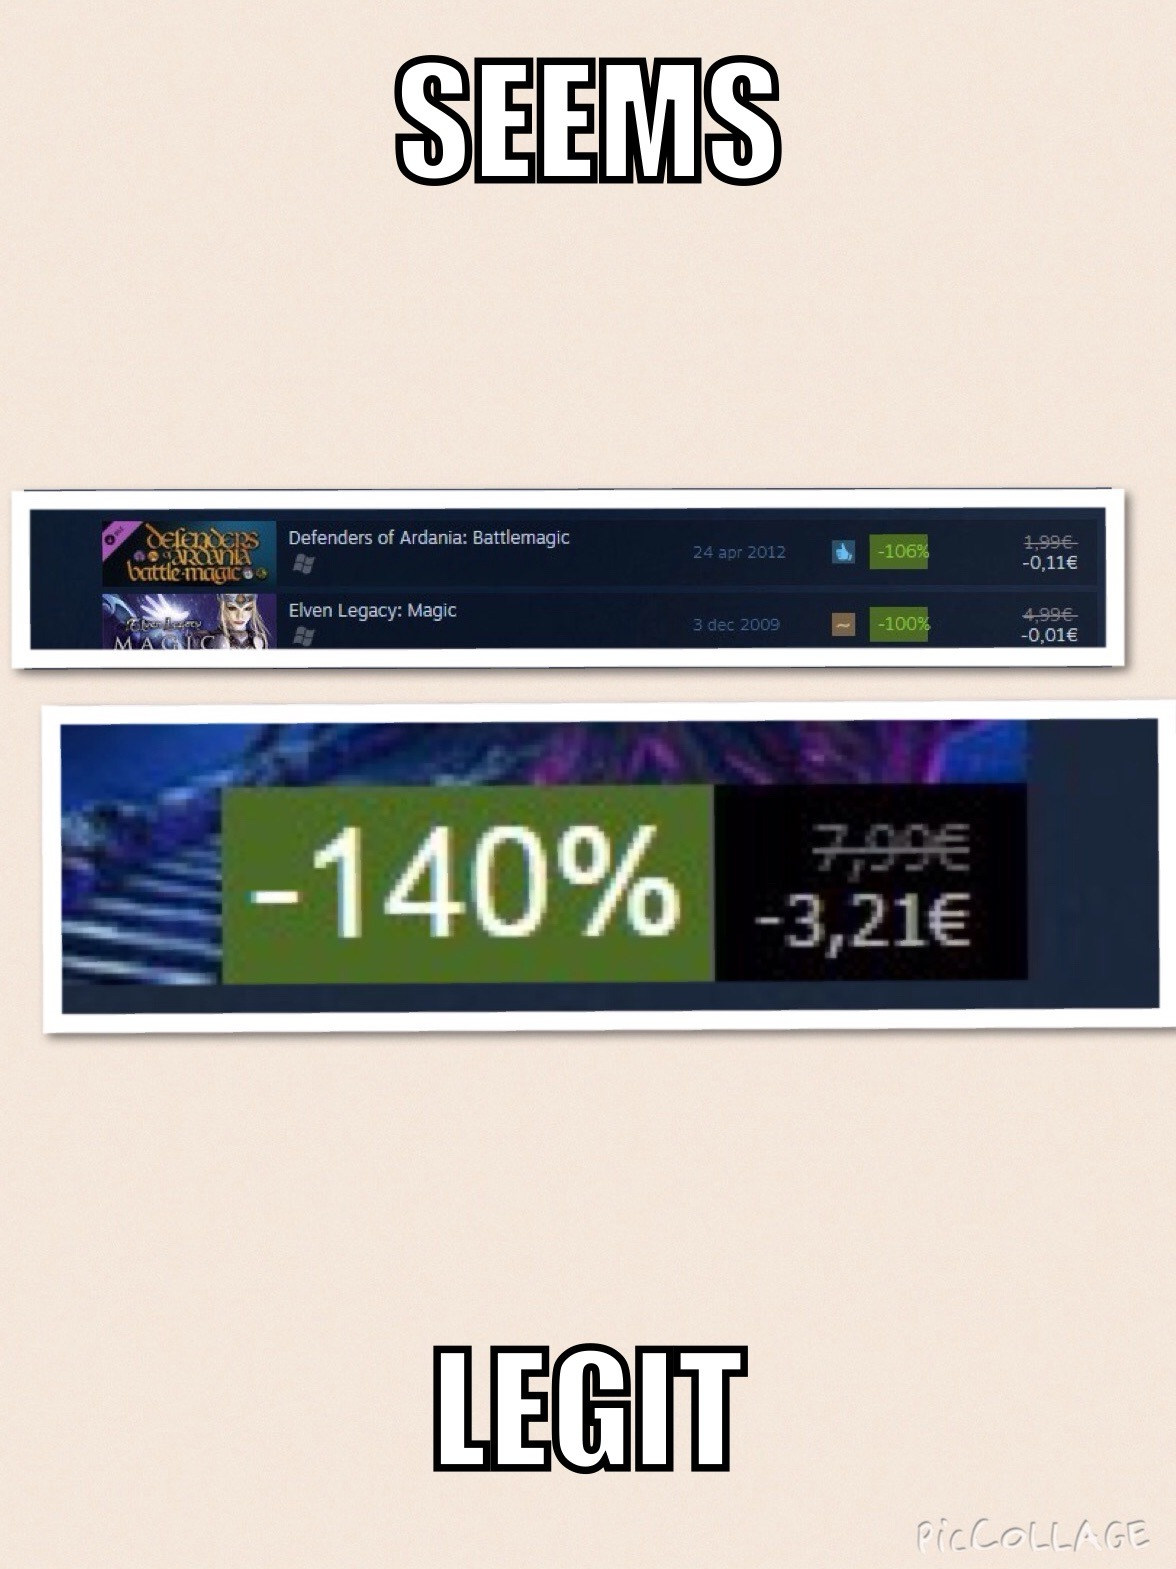 Steam summer sale! - meme